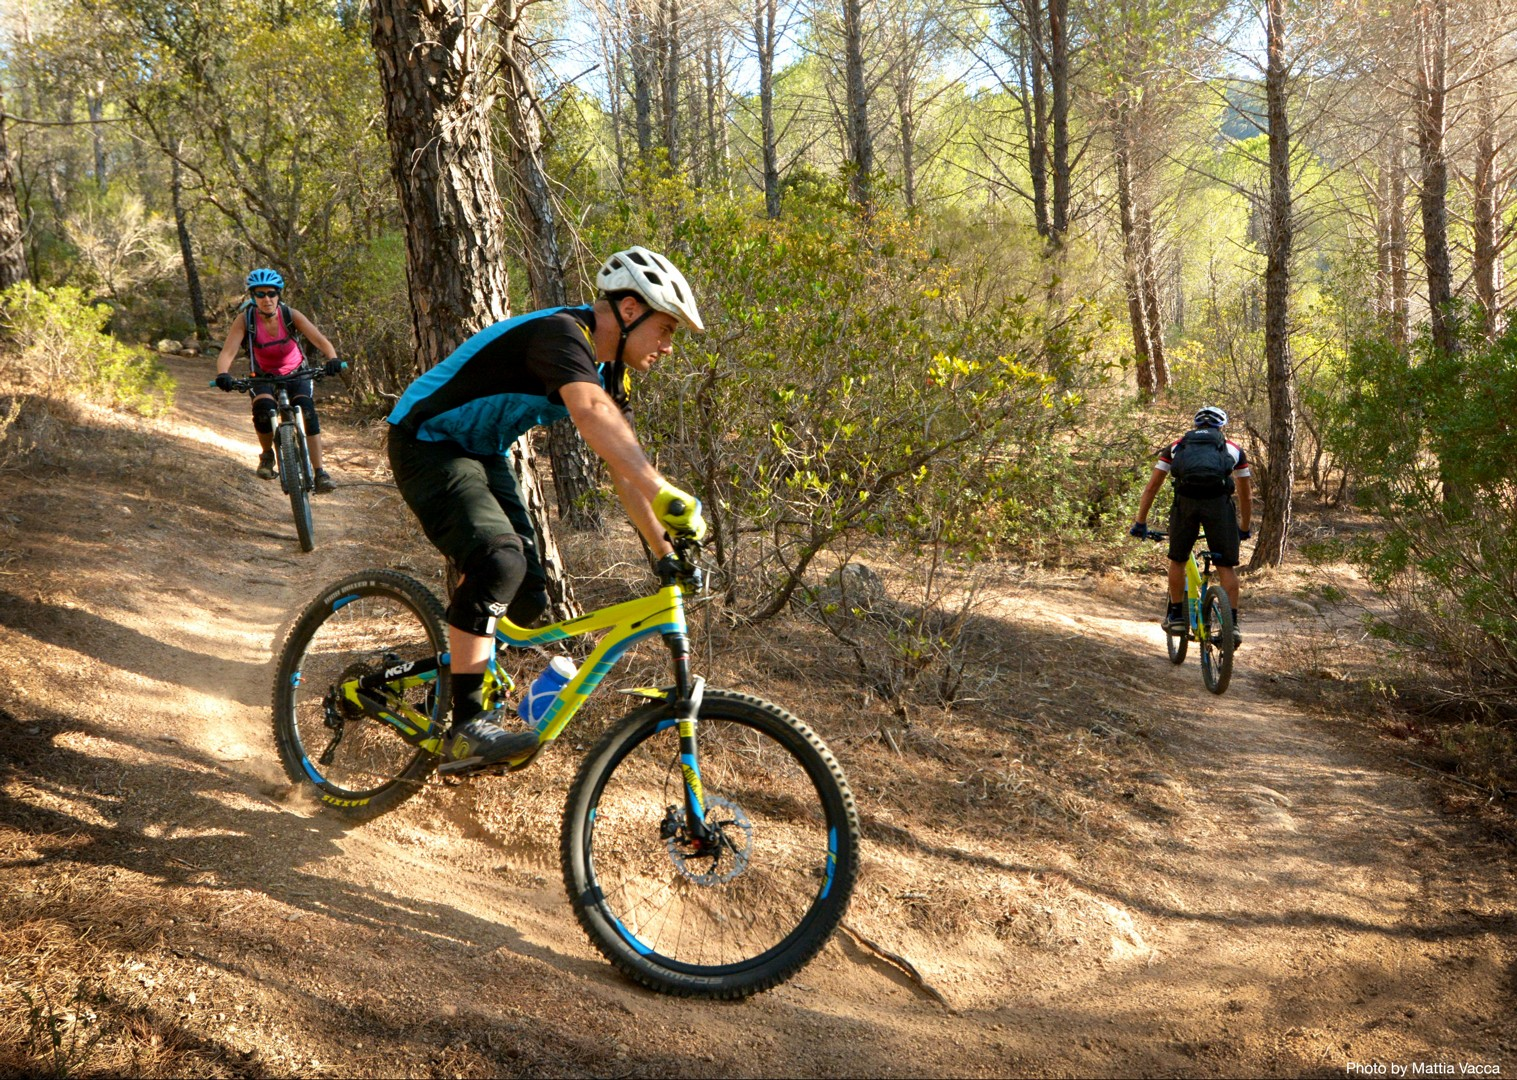 enduro-in-italy-sardinia-mountain-bike-holiday.jpg - Sardinia - Sardinian Enduro - Guided Mountain Bike Holiday - Mountain Biking